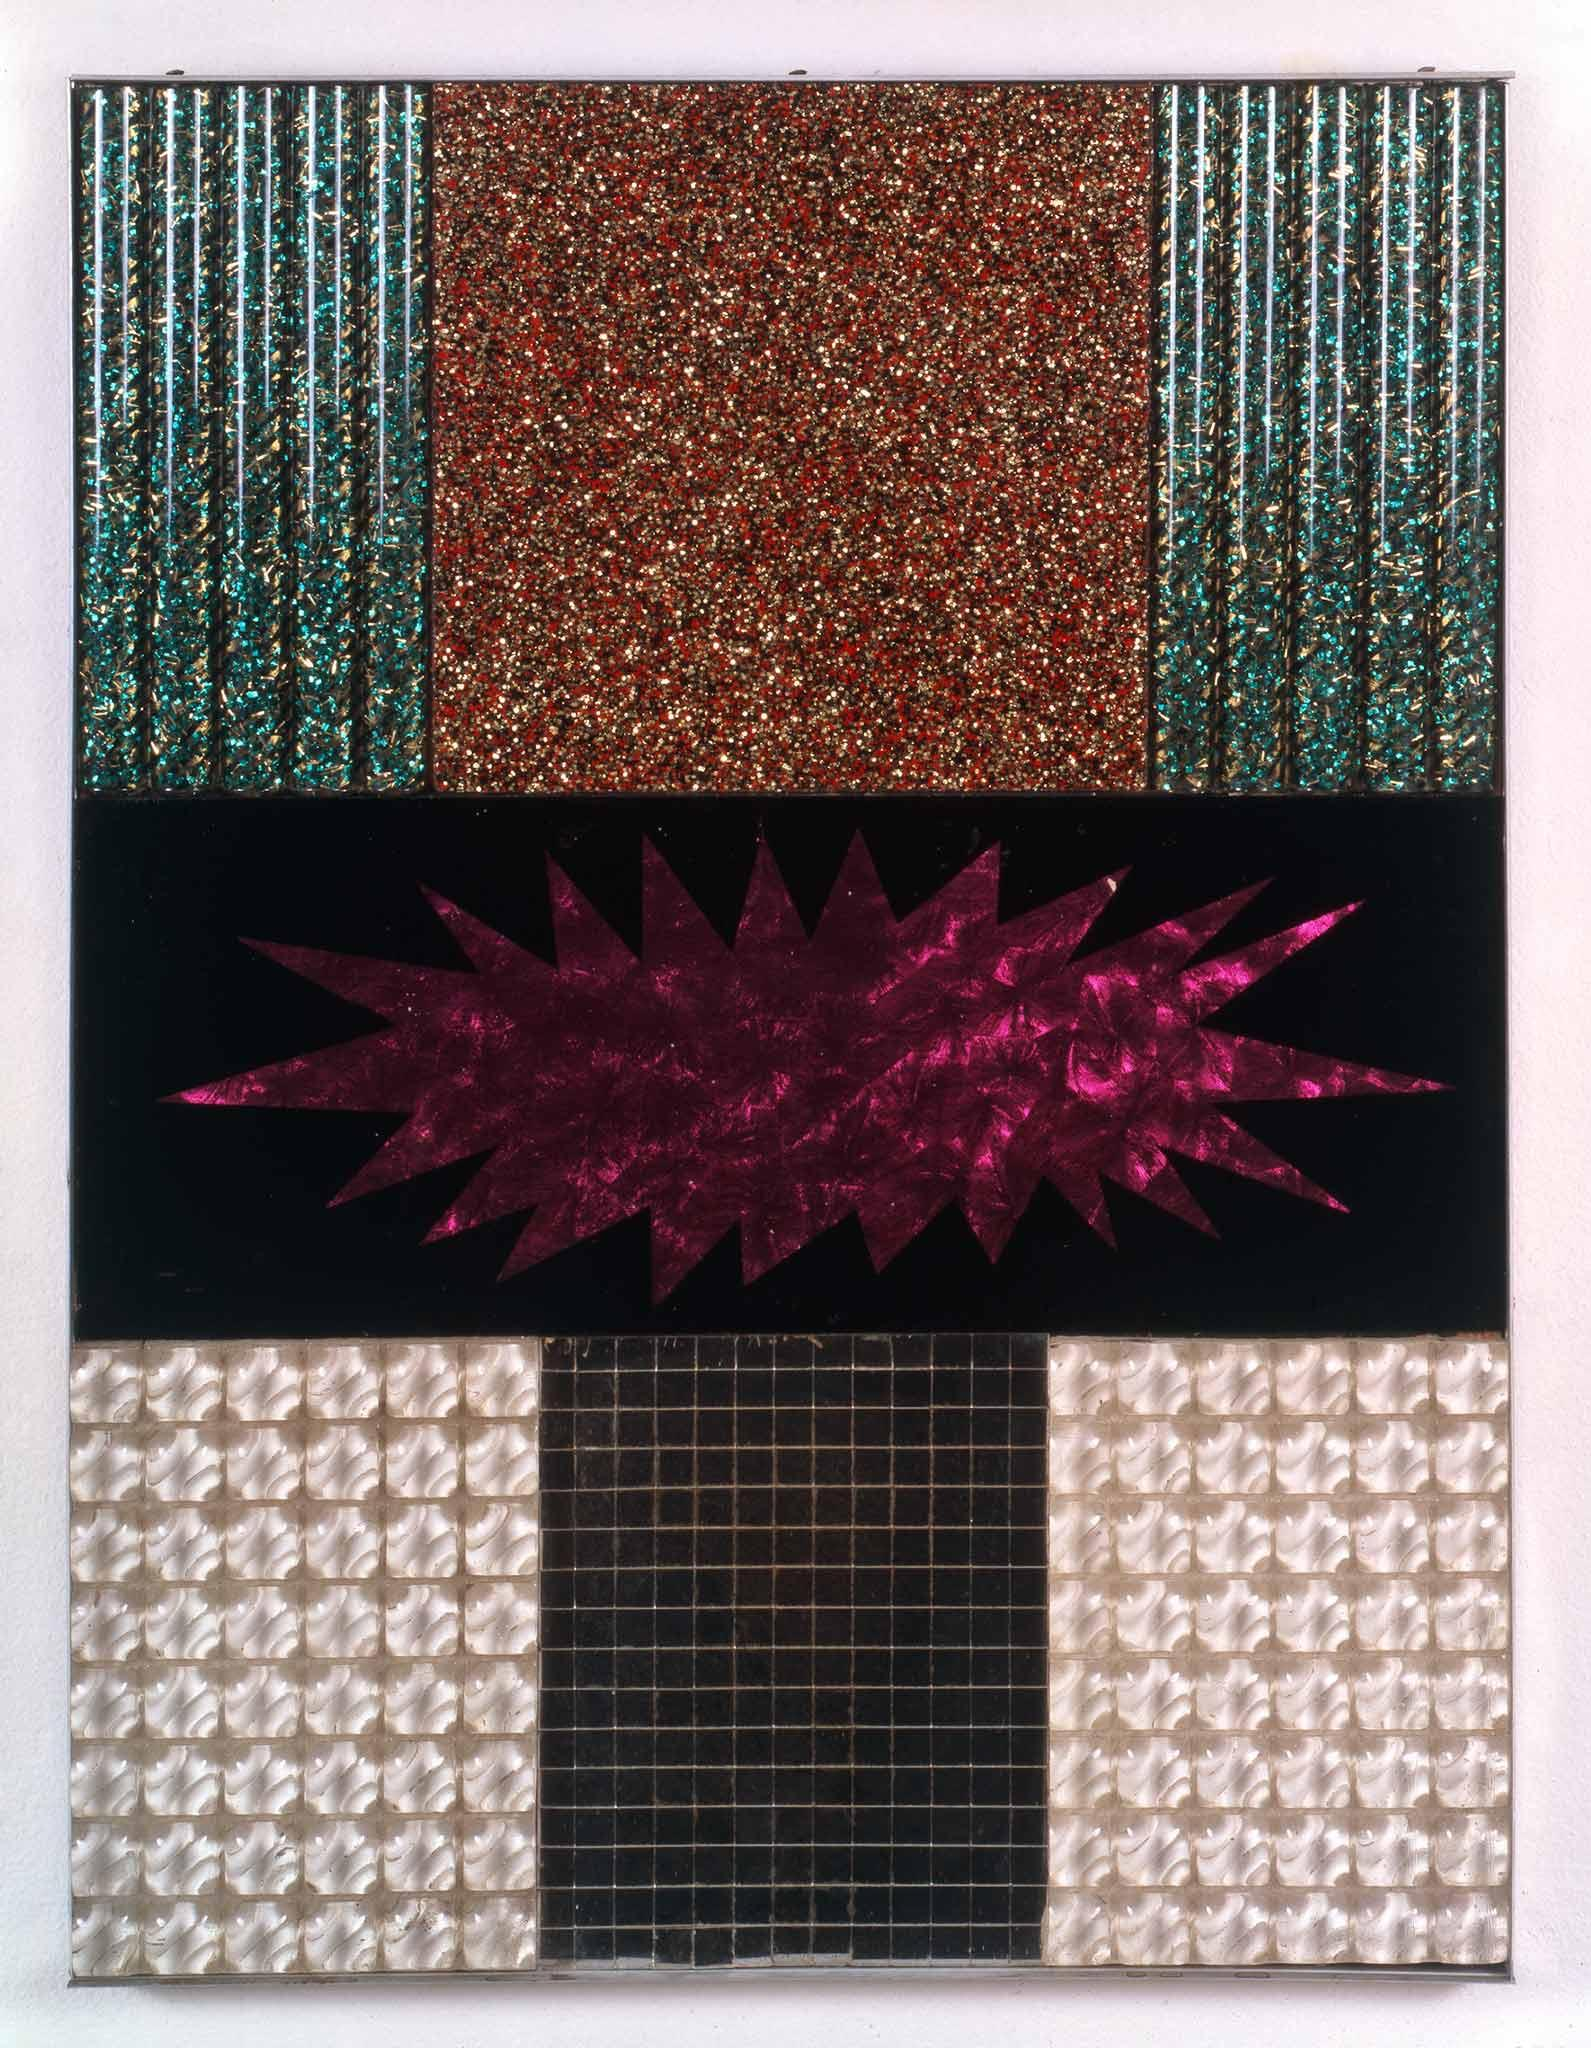 geometric abstract composition with glittery surfaces of pink, blue, red, black, and pearl